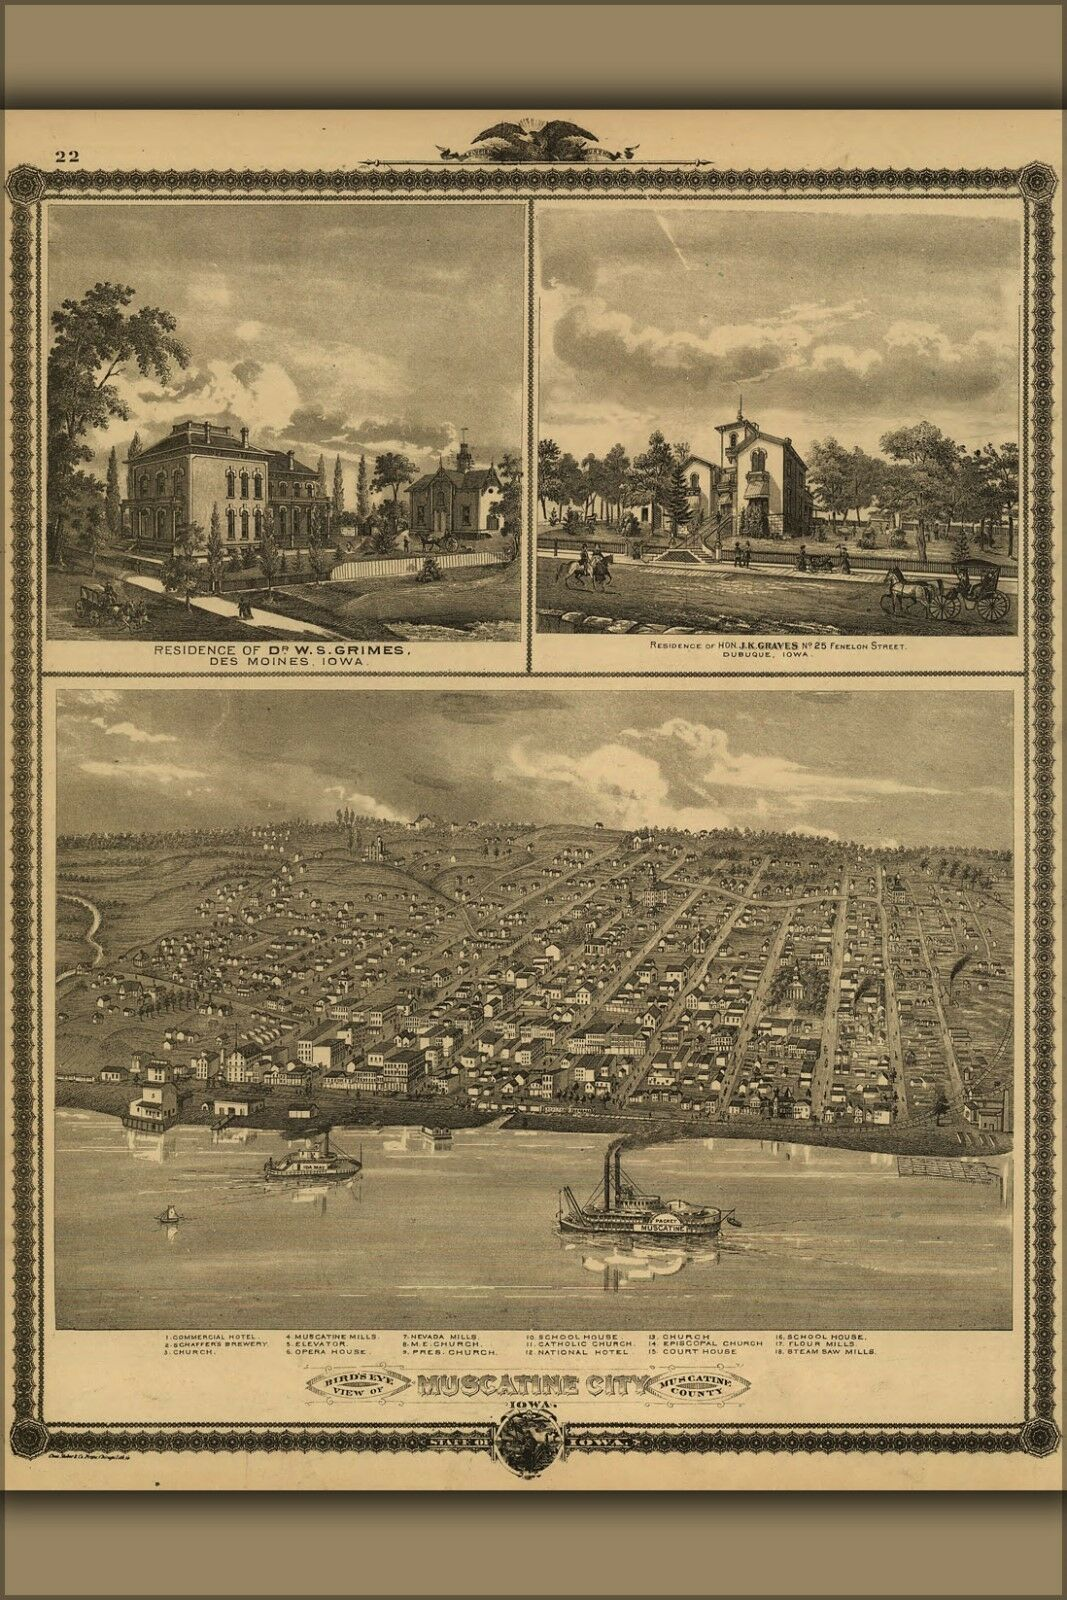 Poster, Many Dimensiones; Birdseye View Map Of Muscatine City Iowa 1875